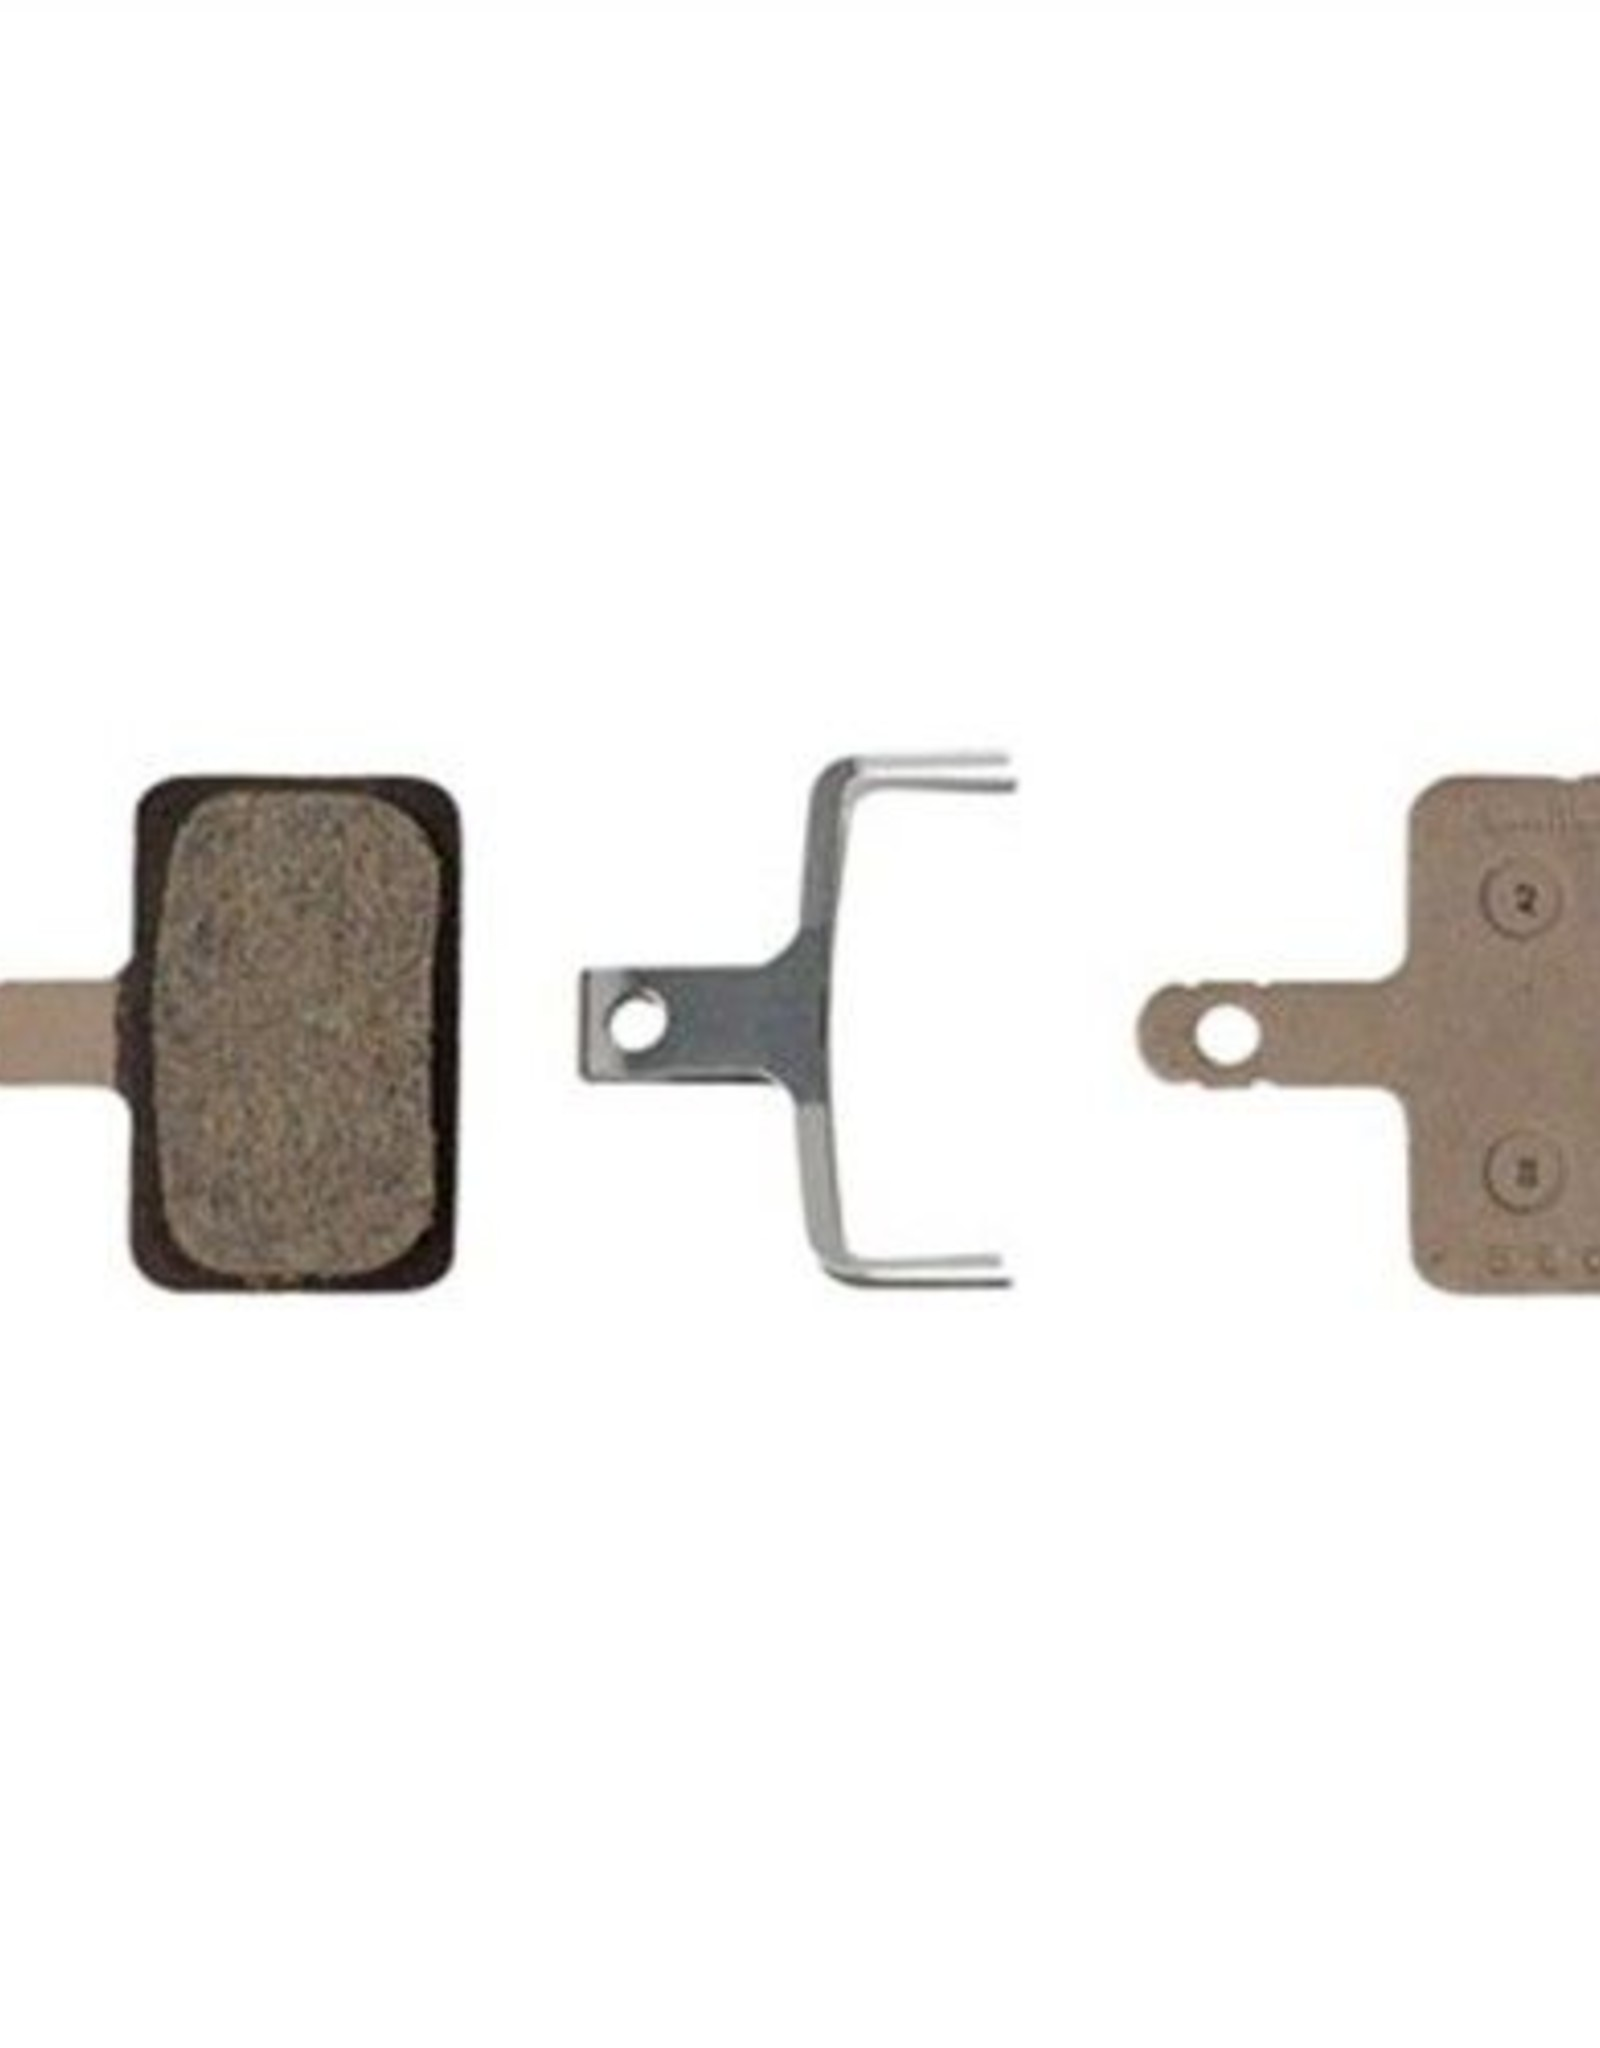 Shimano Shimano B01S Resin Disc Brake Pads and Spring, Bulk/No Packaging for Deore BR- M575, BR-M495, BR-M486, BR-M485, BR-M445 Calipers